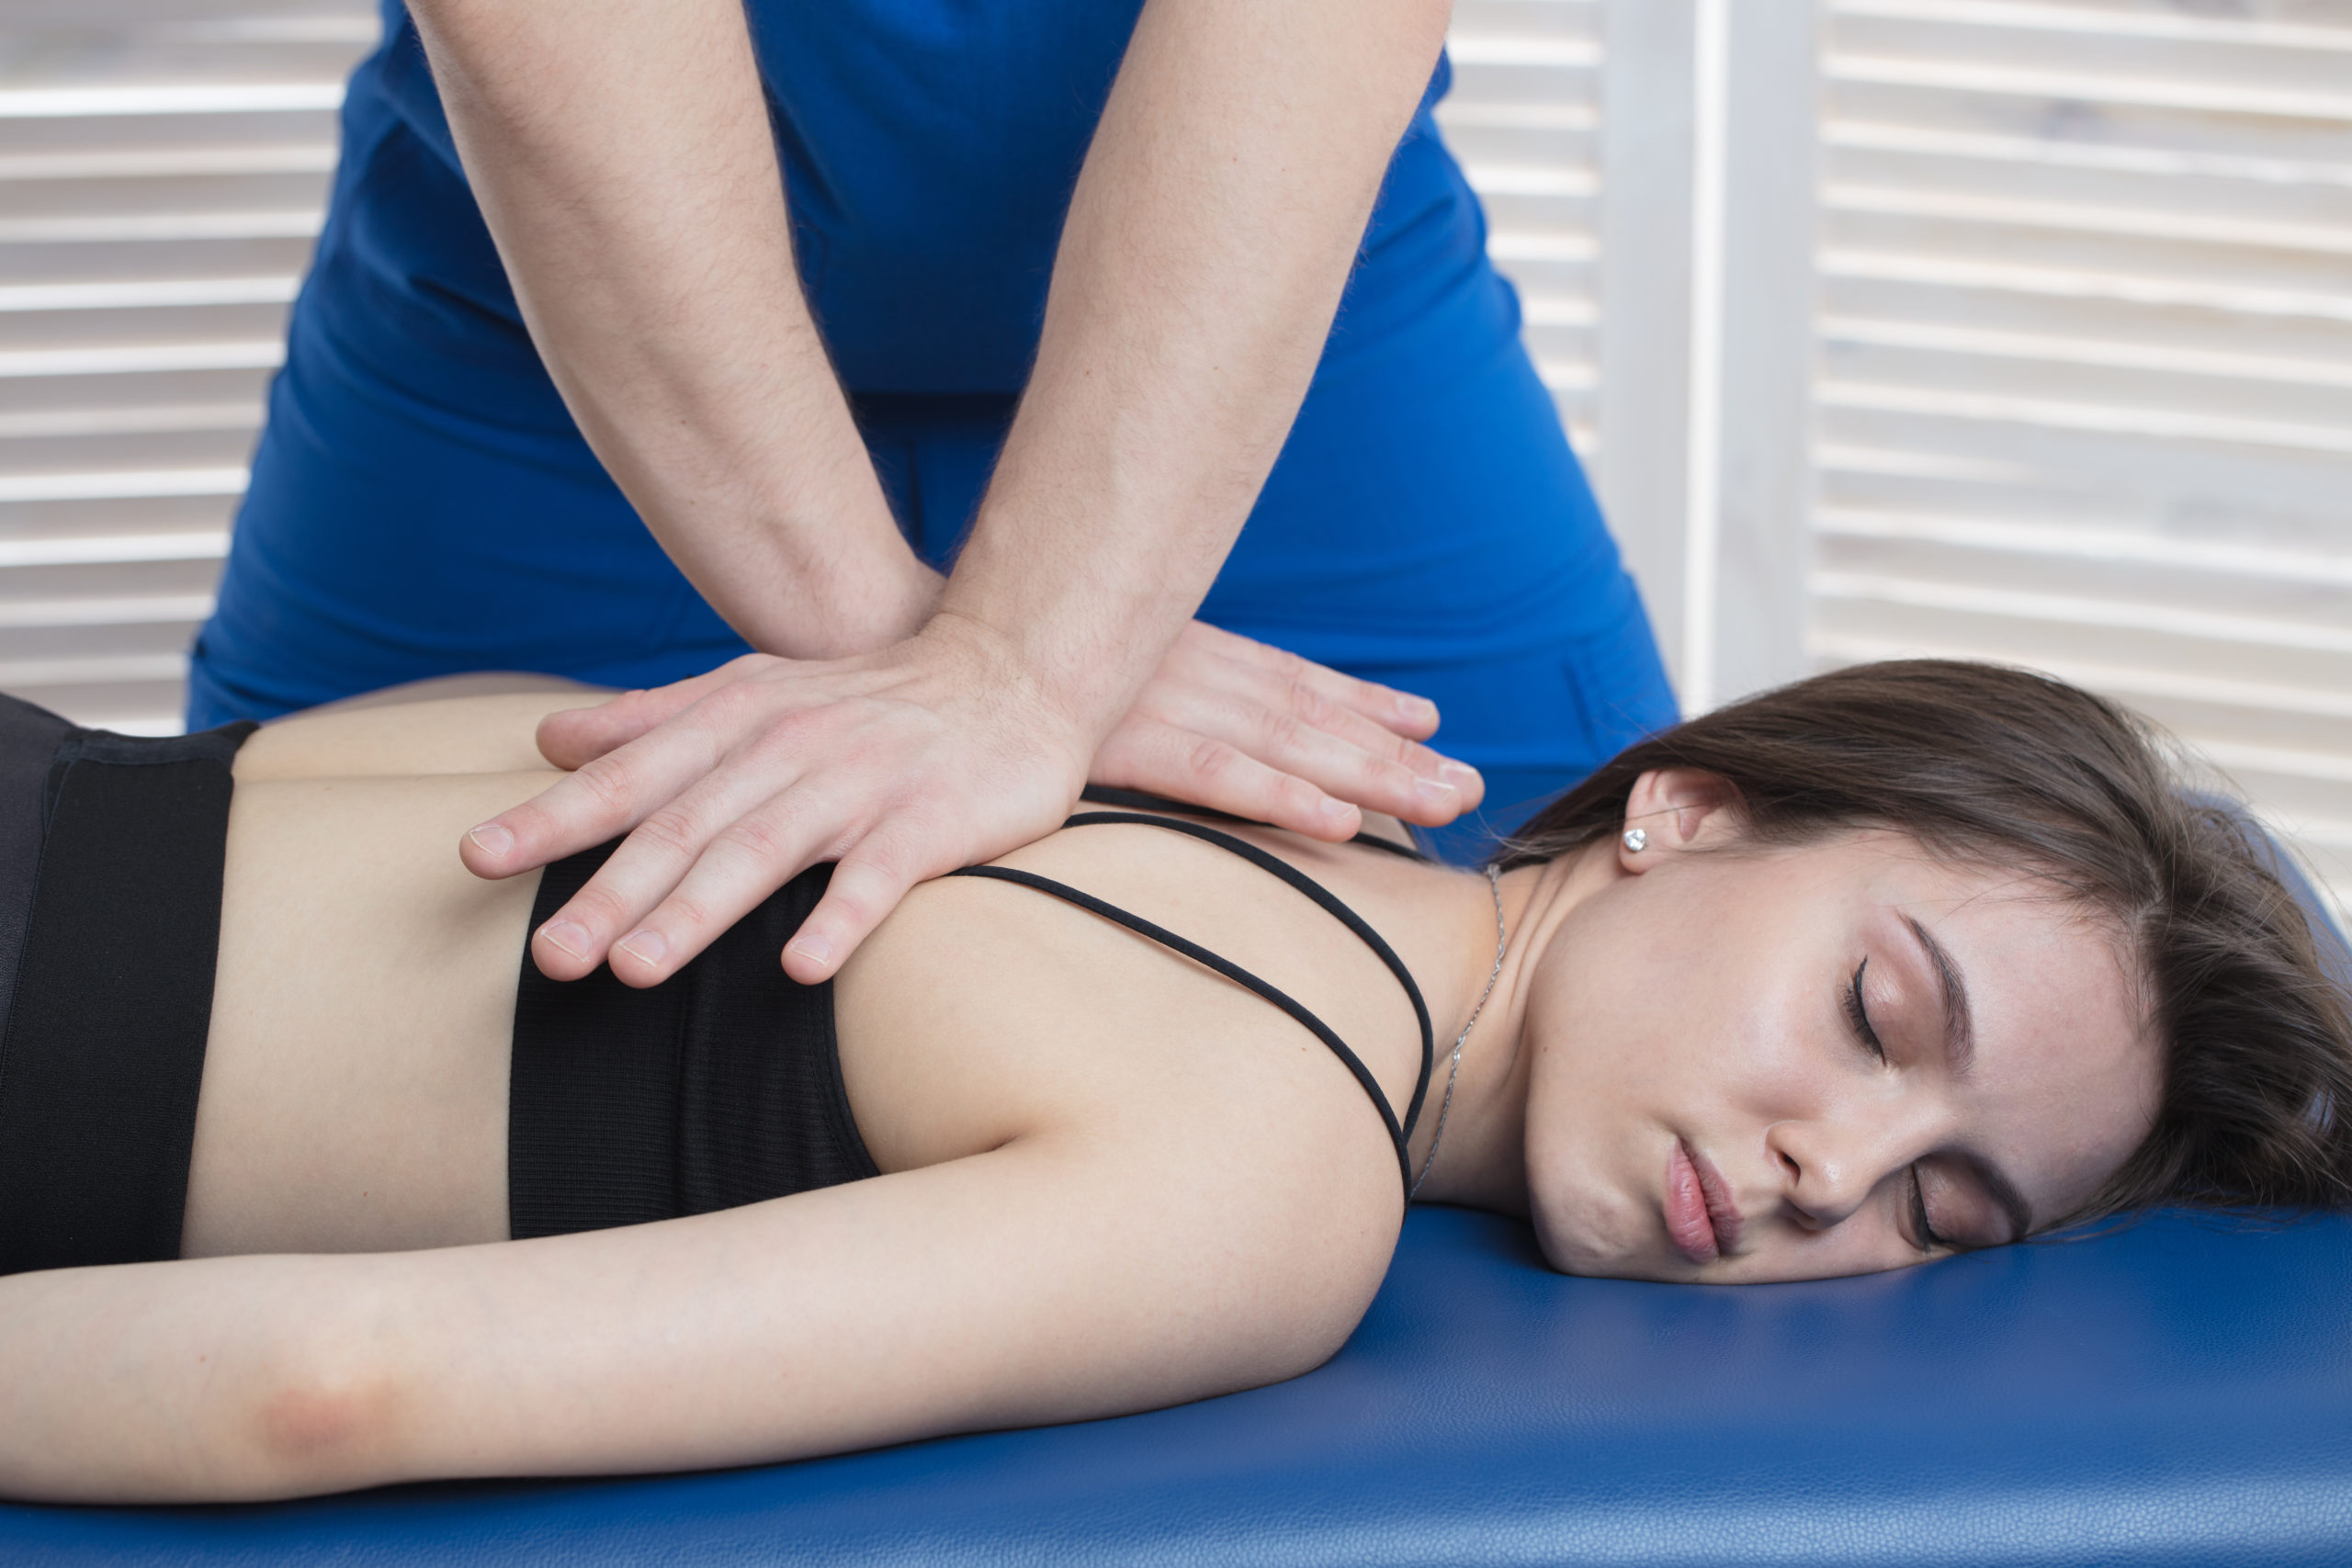 Physiotherapy mobilisation and manipulation treatment of a back injury